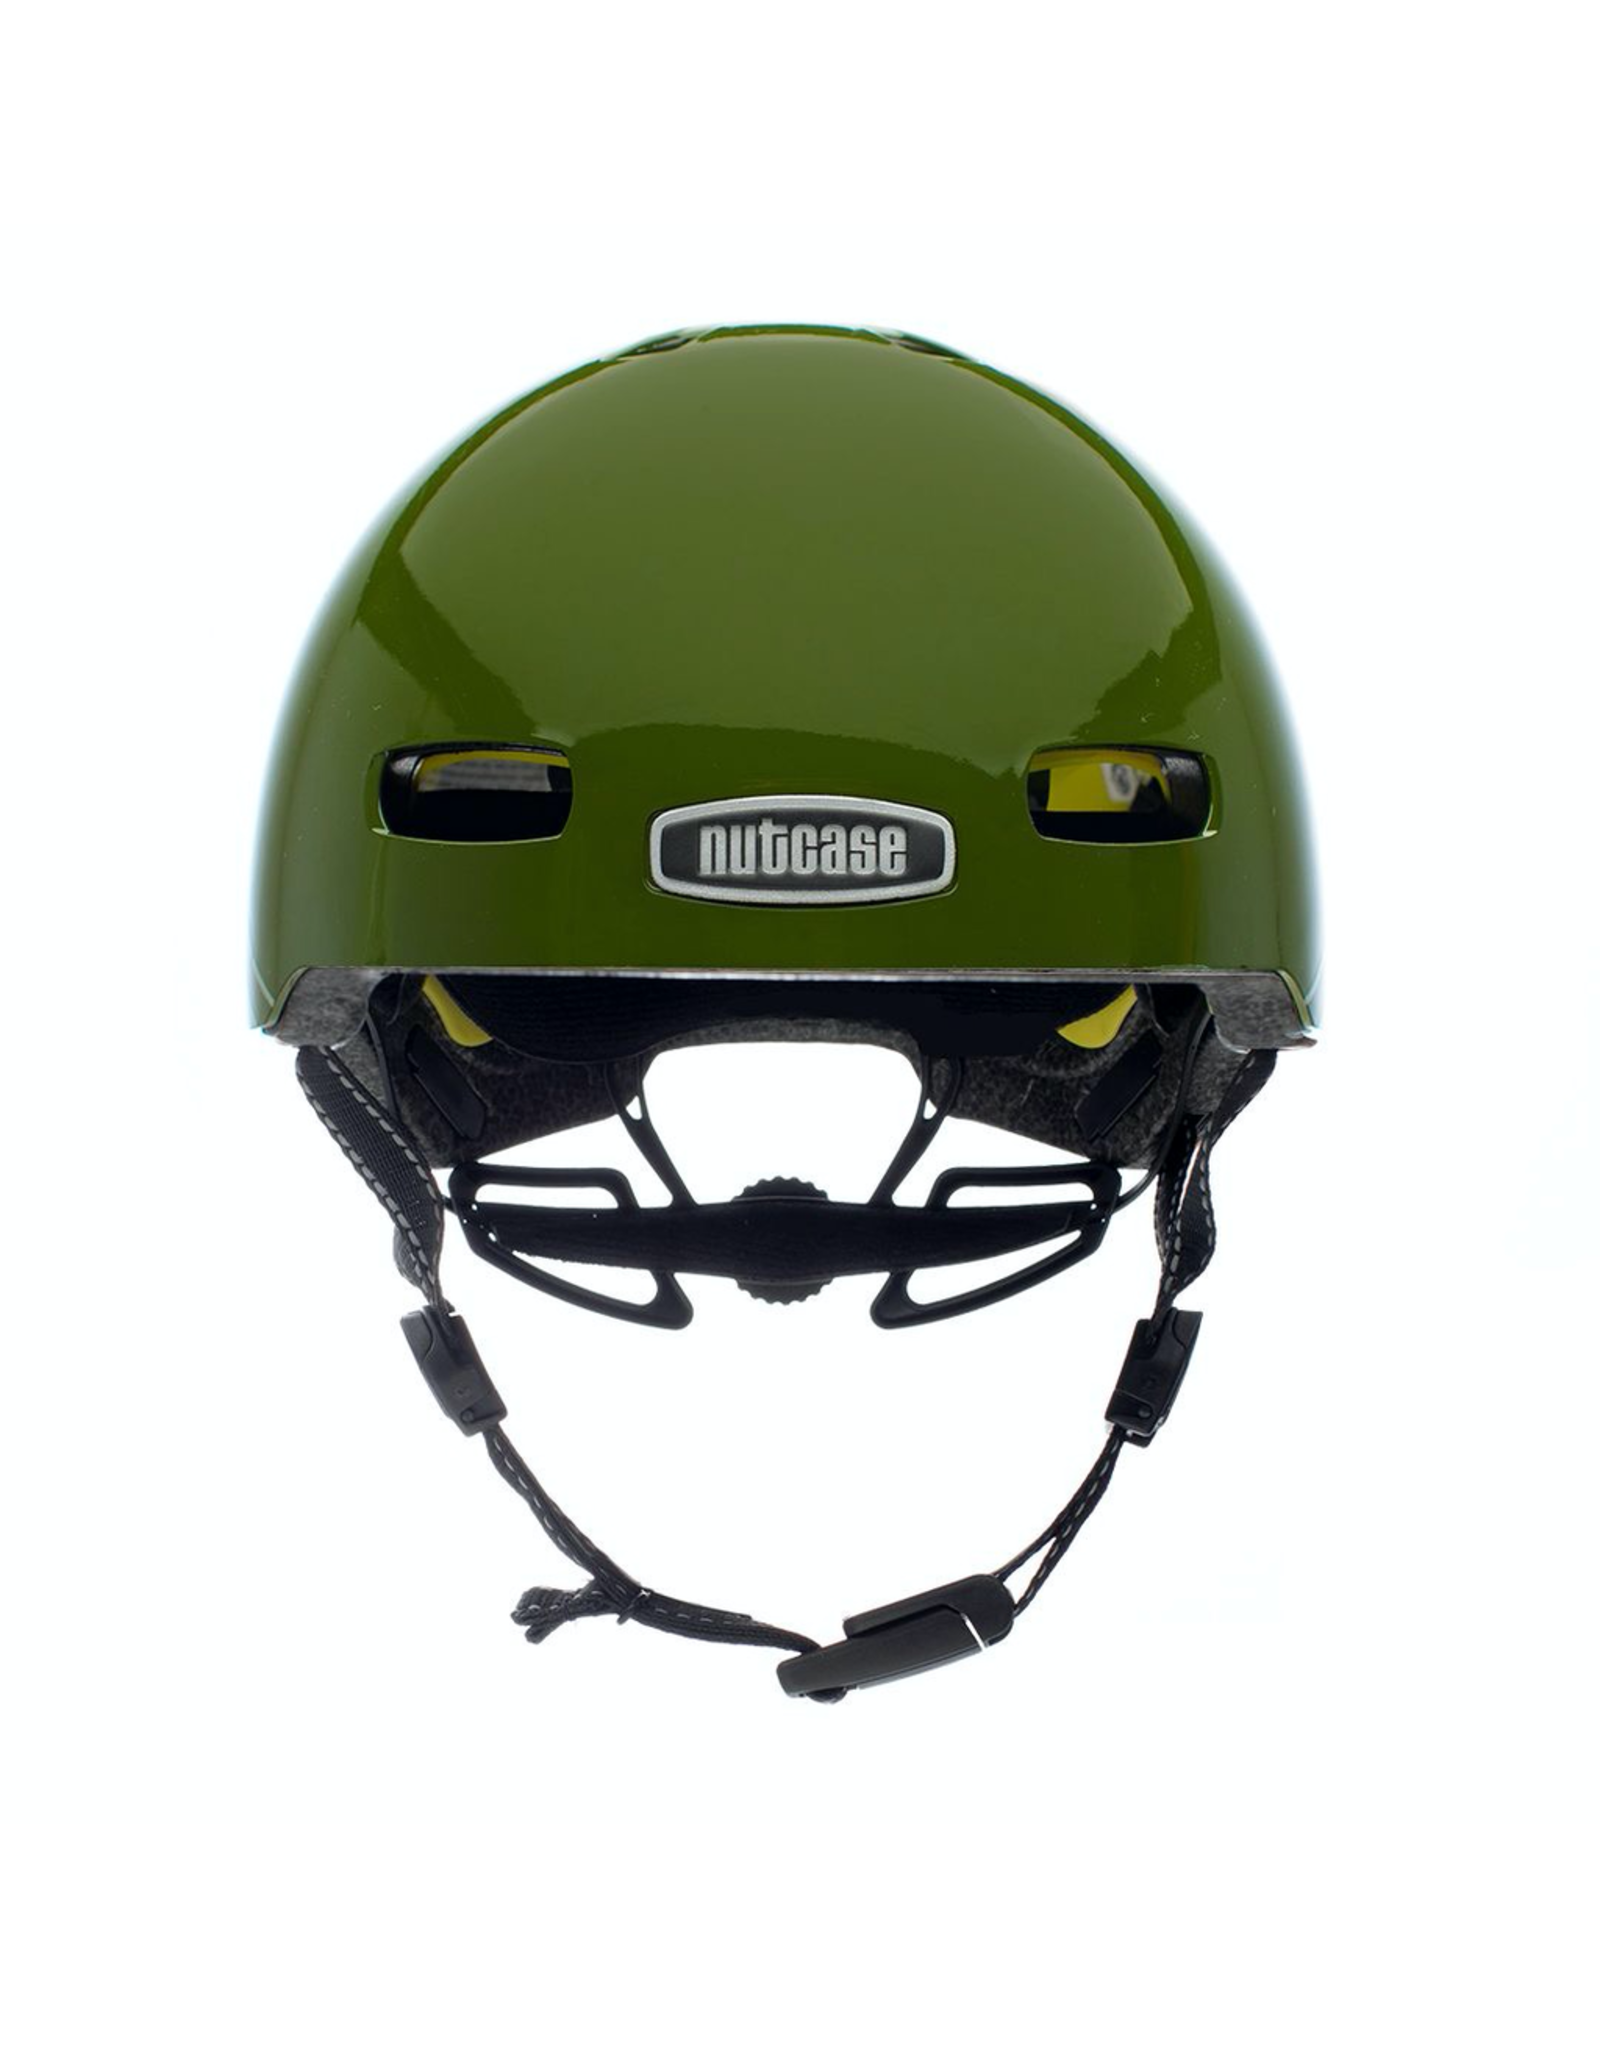 Nutcase Street Dust For Prints Reflective Mips Helmet S